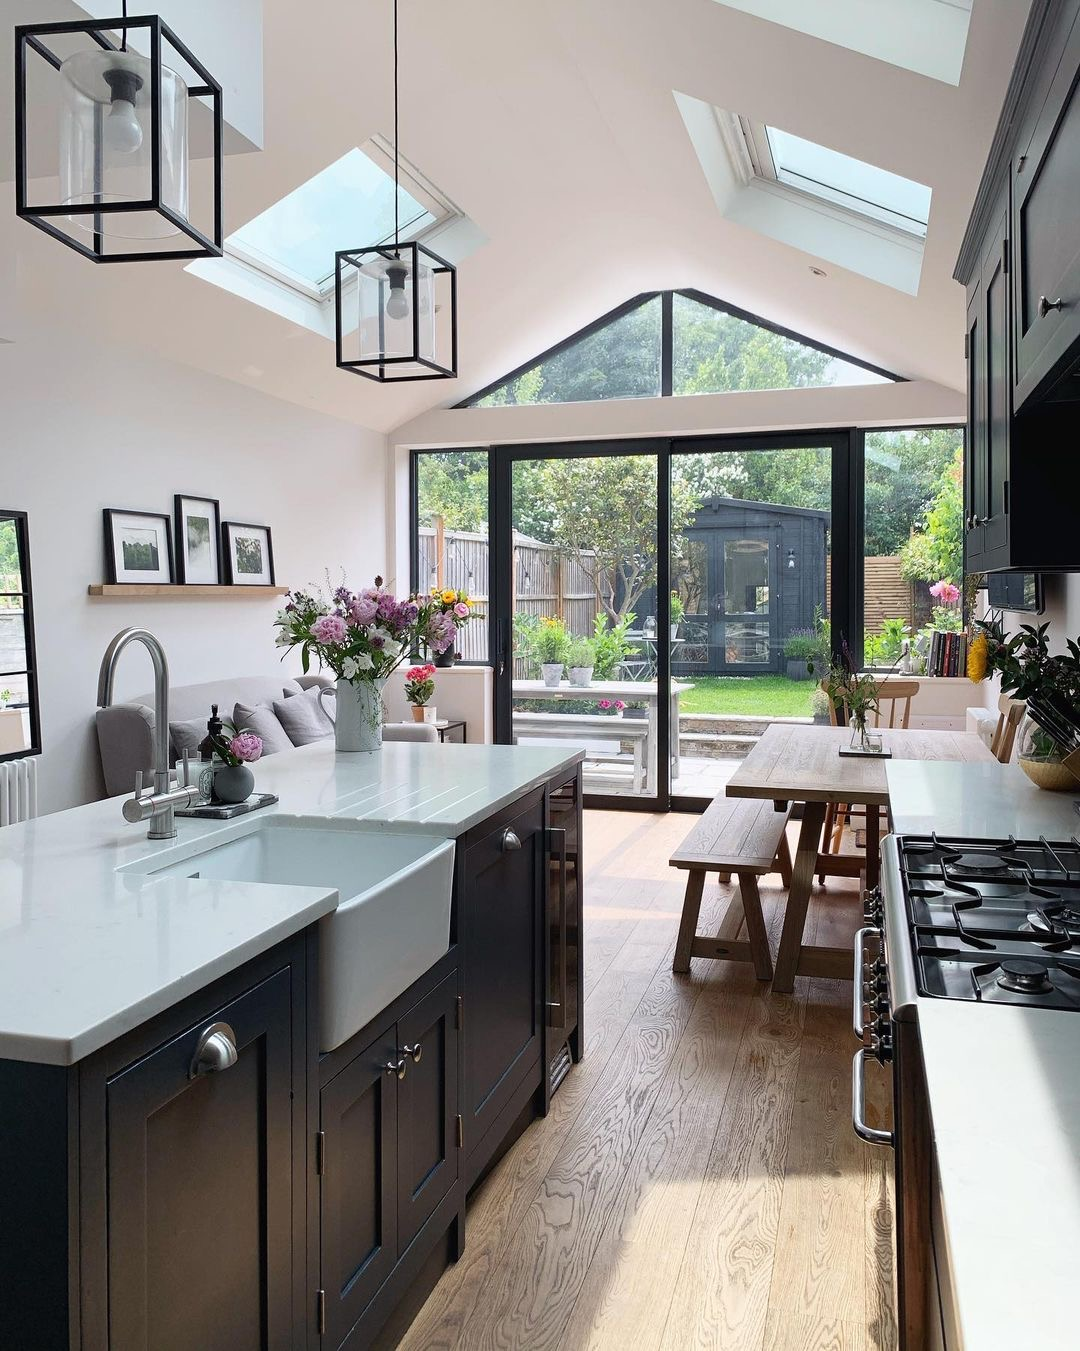 Image of worktops in the kitchen of @thelittleterracedhouse